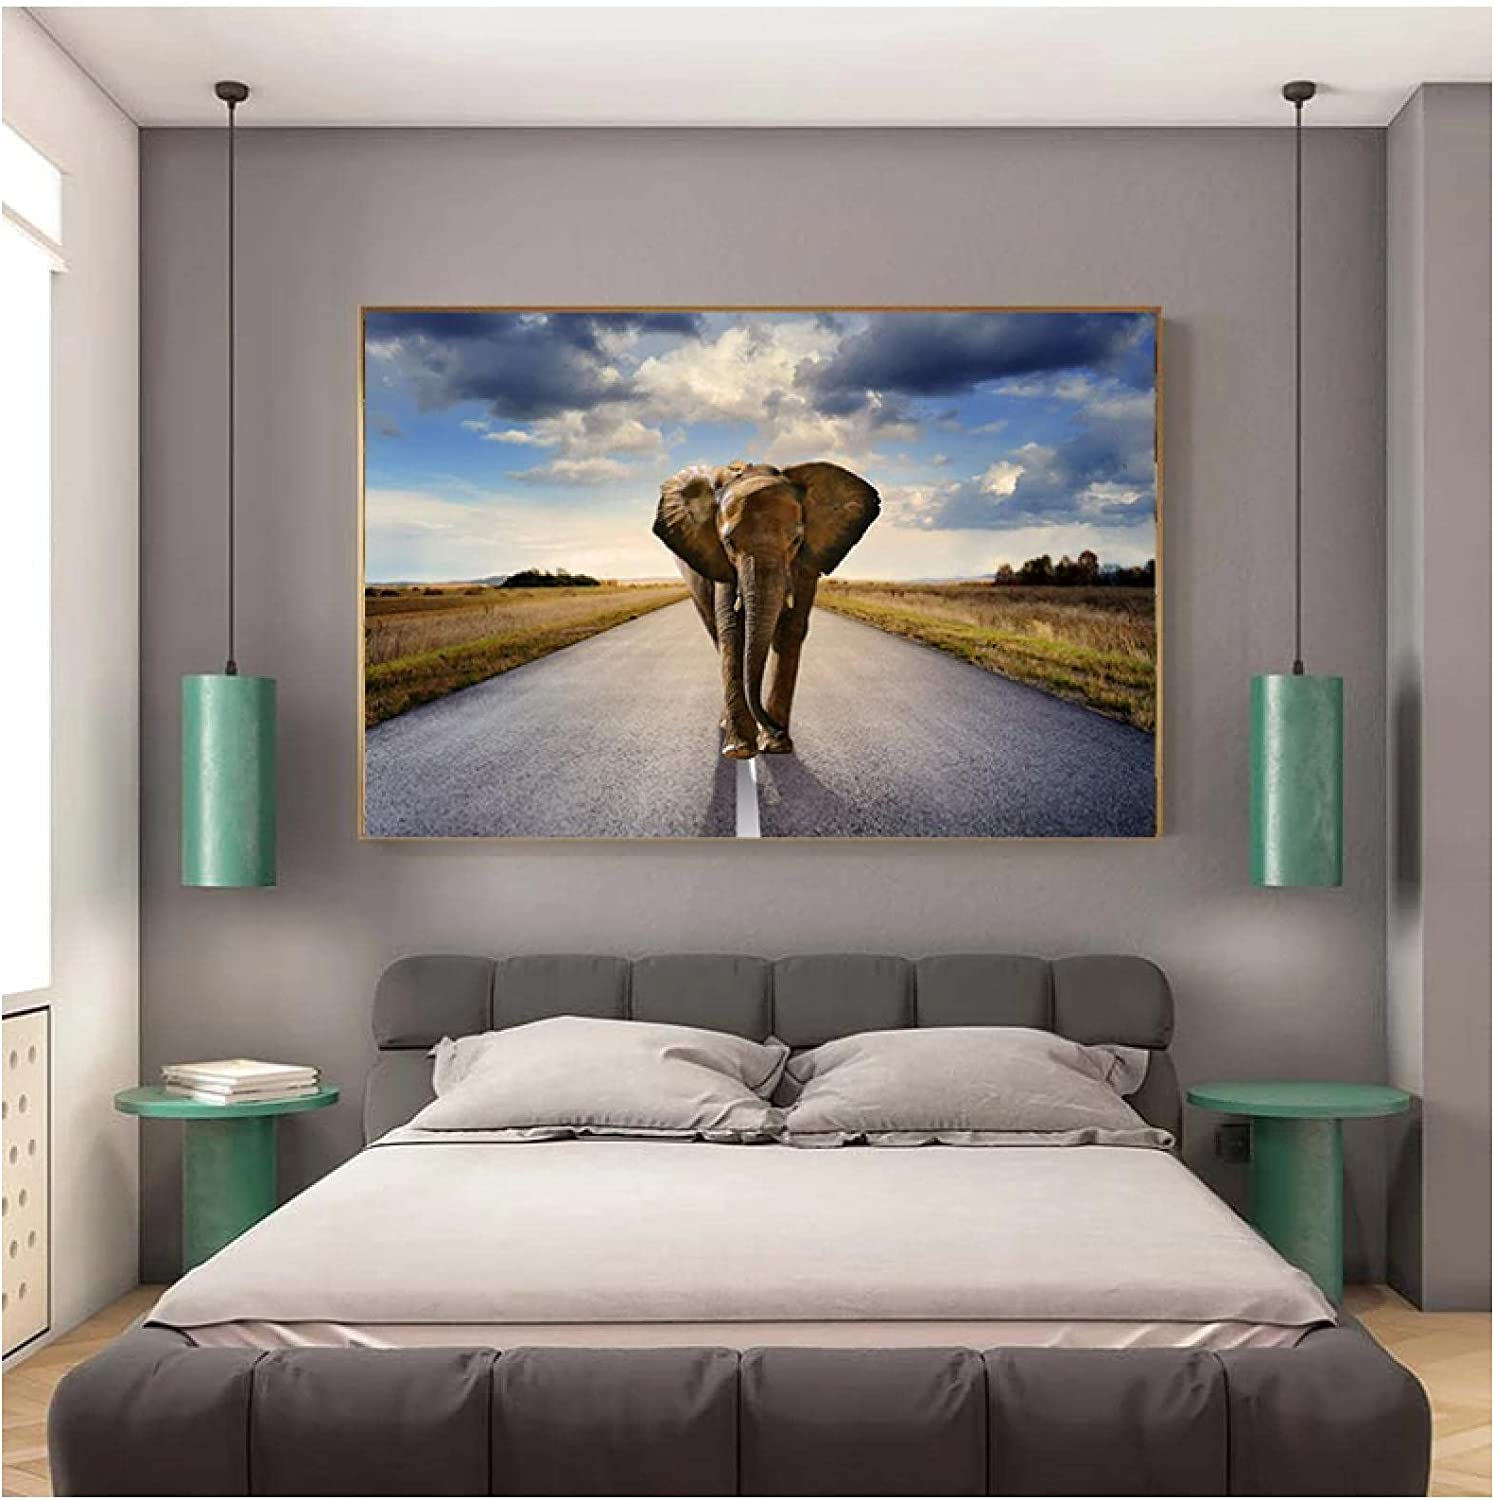 QIAOZ Free shipping anywhere in the nation Wall Art ,African Elephant Wild Sunset Animals 2021 model Landscape